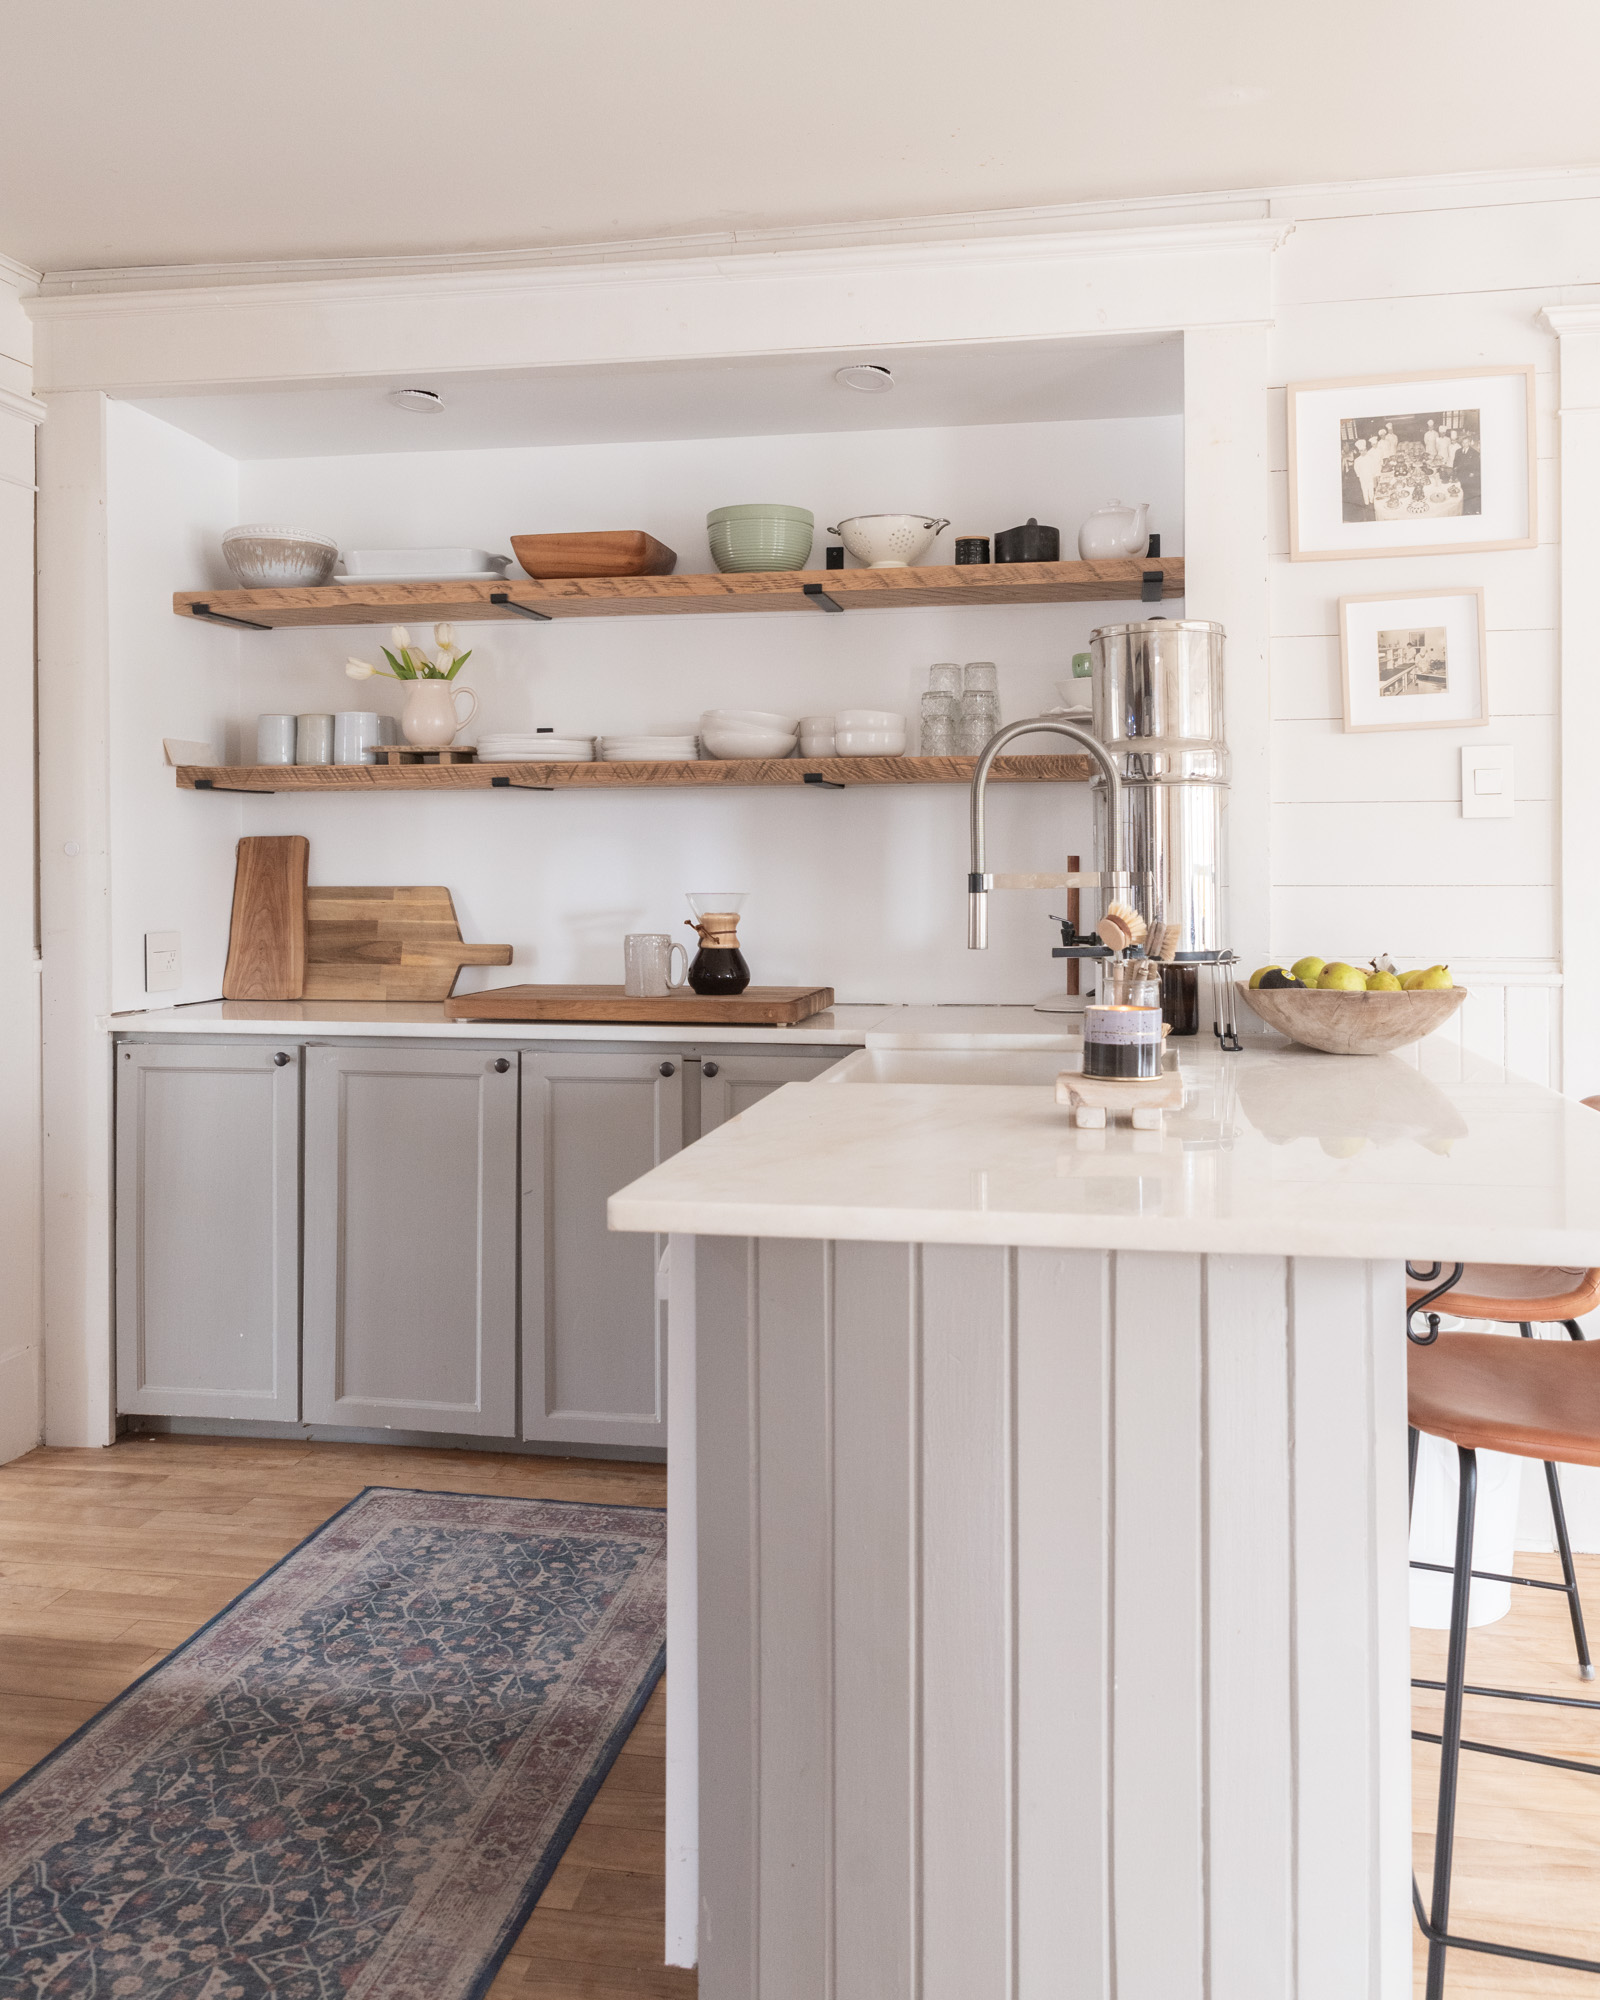 The Wild Decoelis | Kitchen shelves rough sawn with black iron brackets minimal reclaimed wood and white ceramics. grey kitchen cabinets white walls